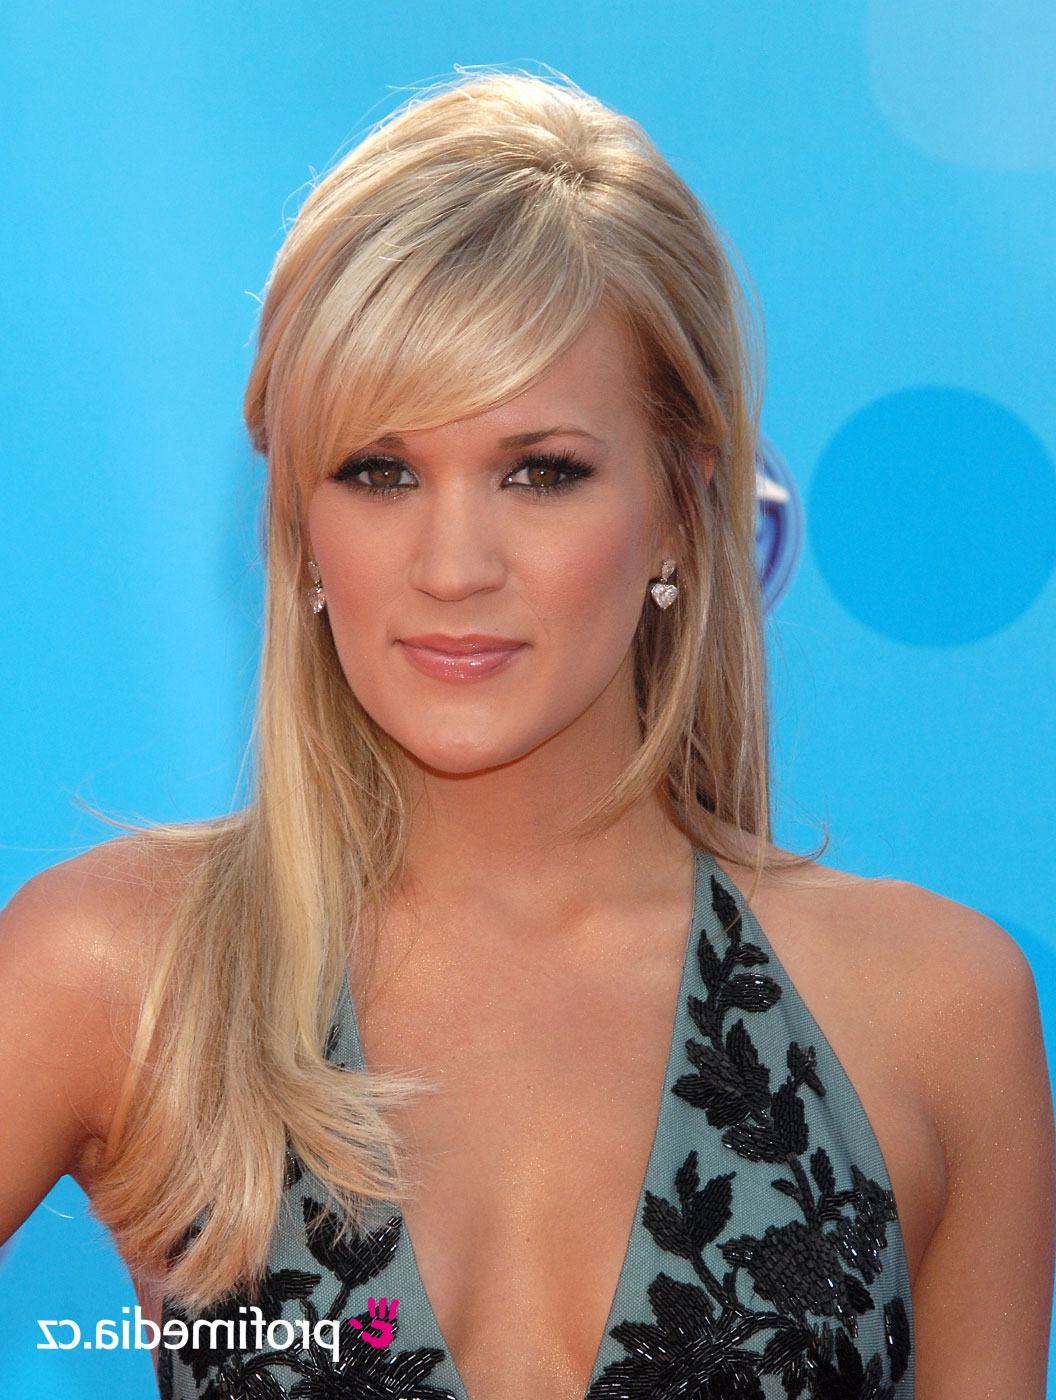 Carrie Underwood Short Hairstyles | All Hairstyles Within Carrie Underwood Short Haircuts (View 4 of 25)